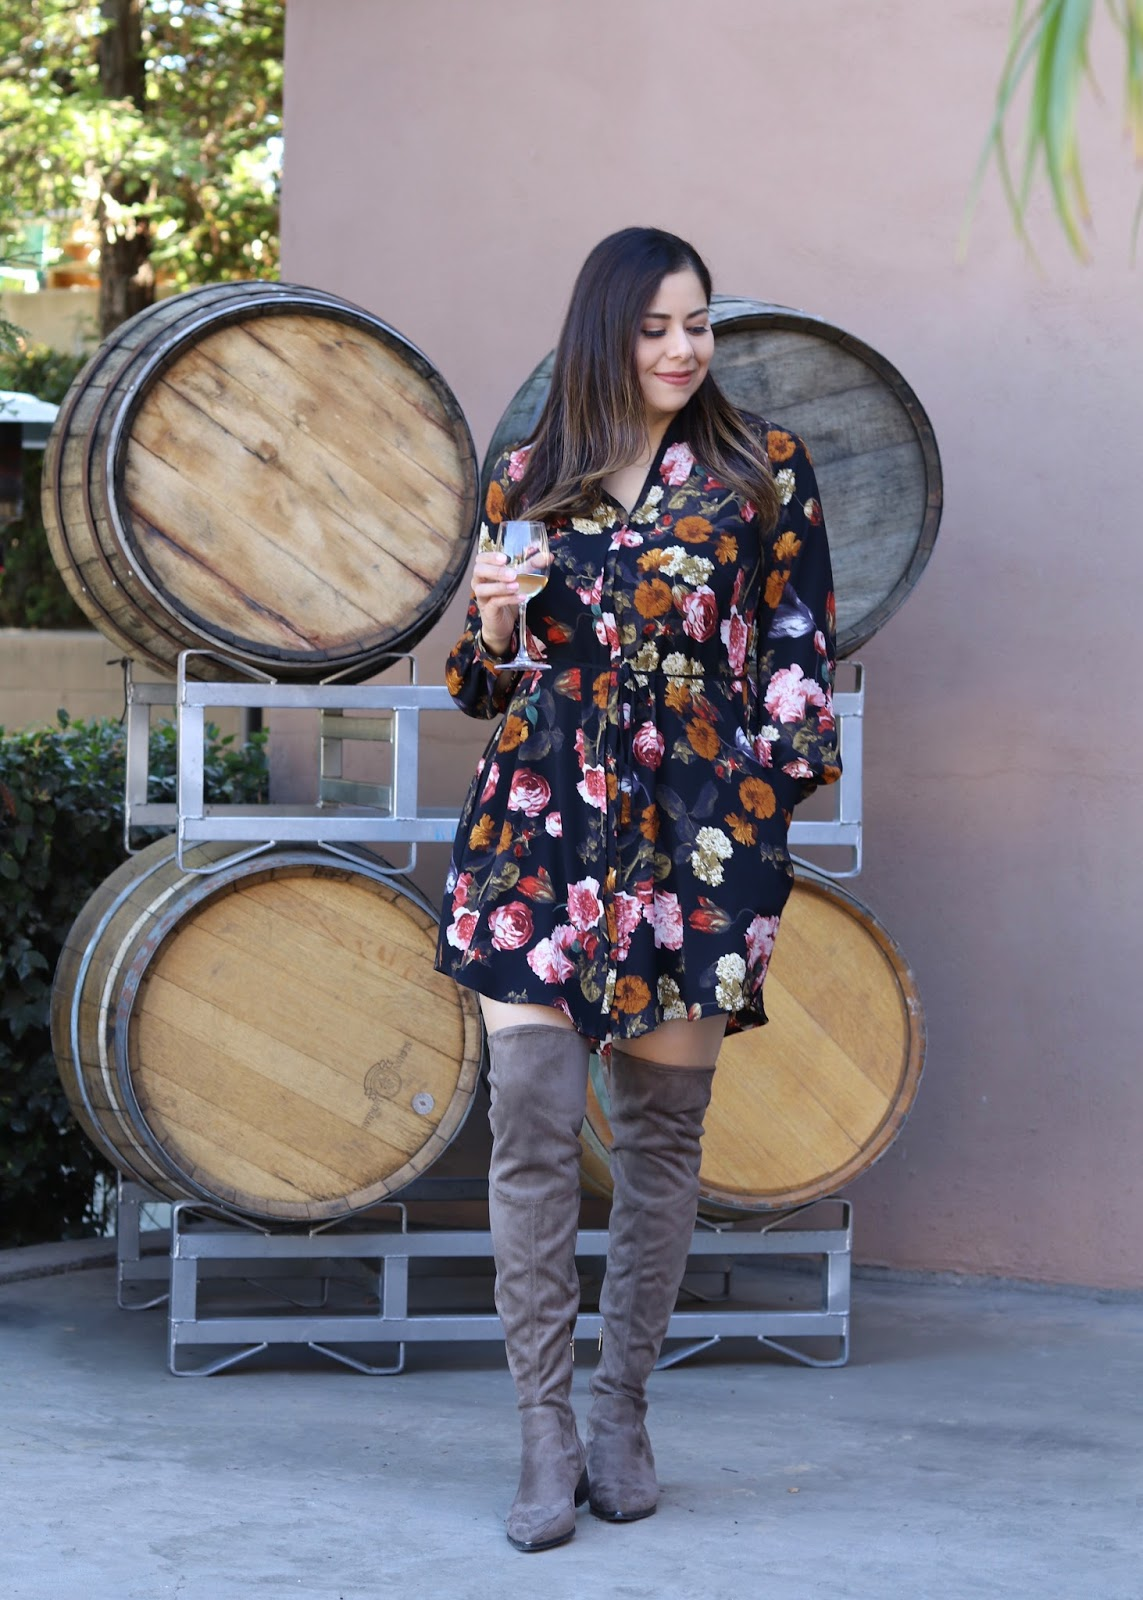 H&M floral dress, winter floral dress, H&M blogger